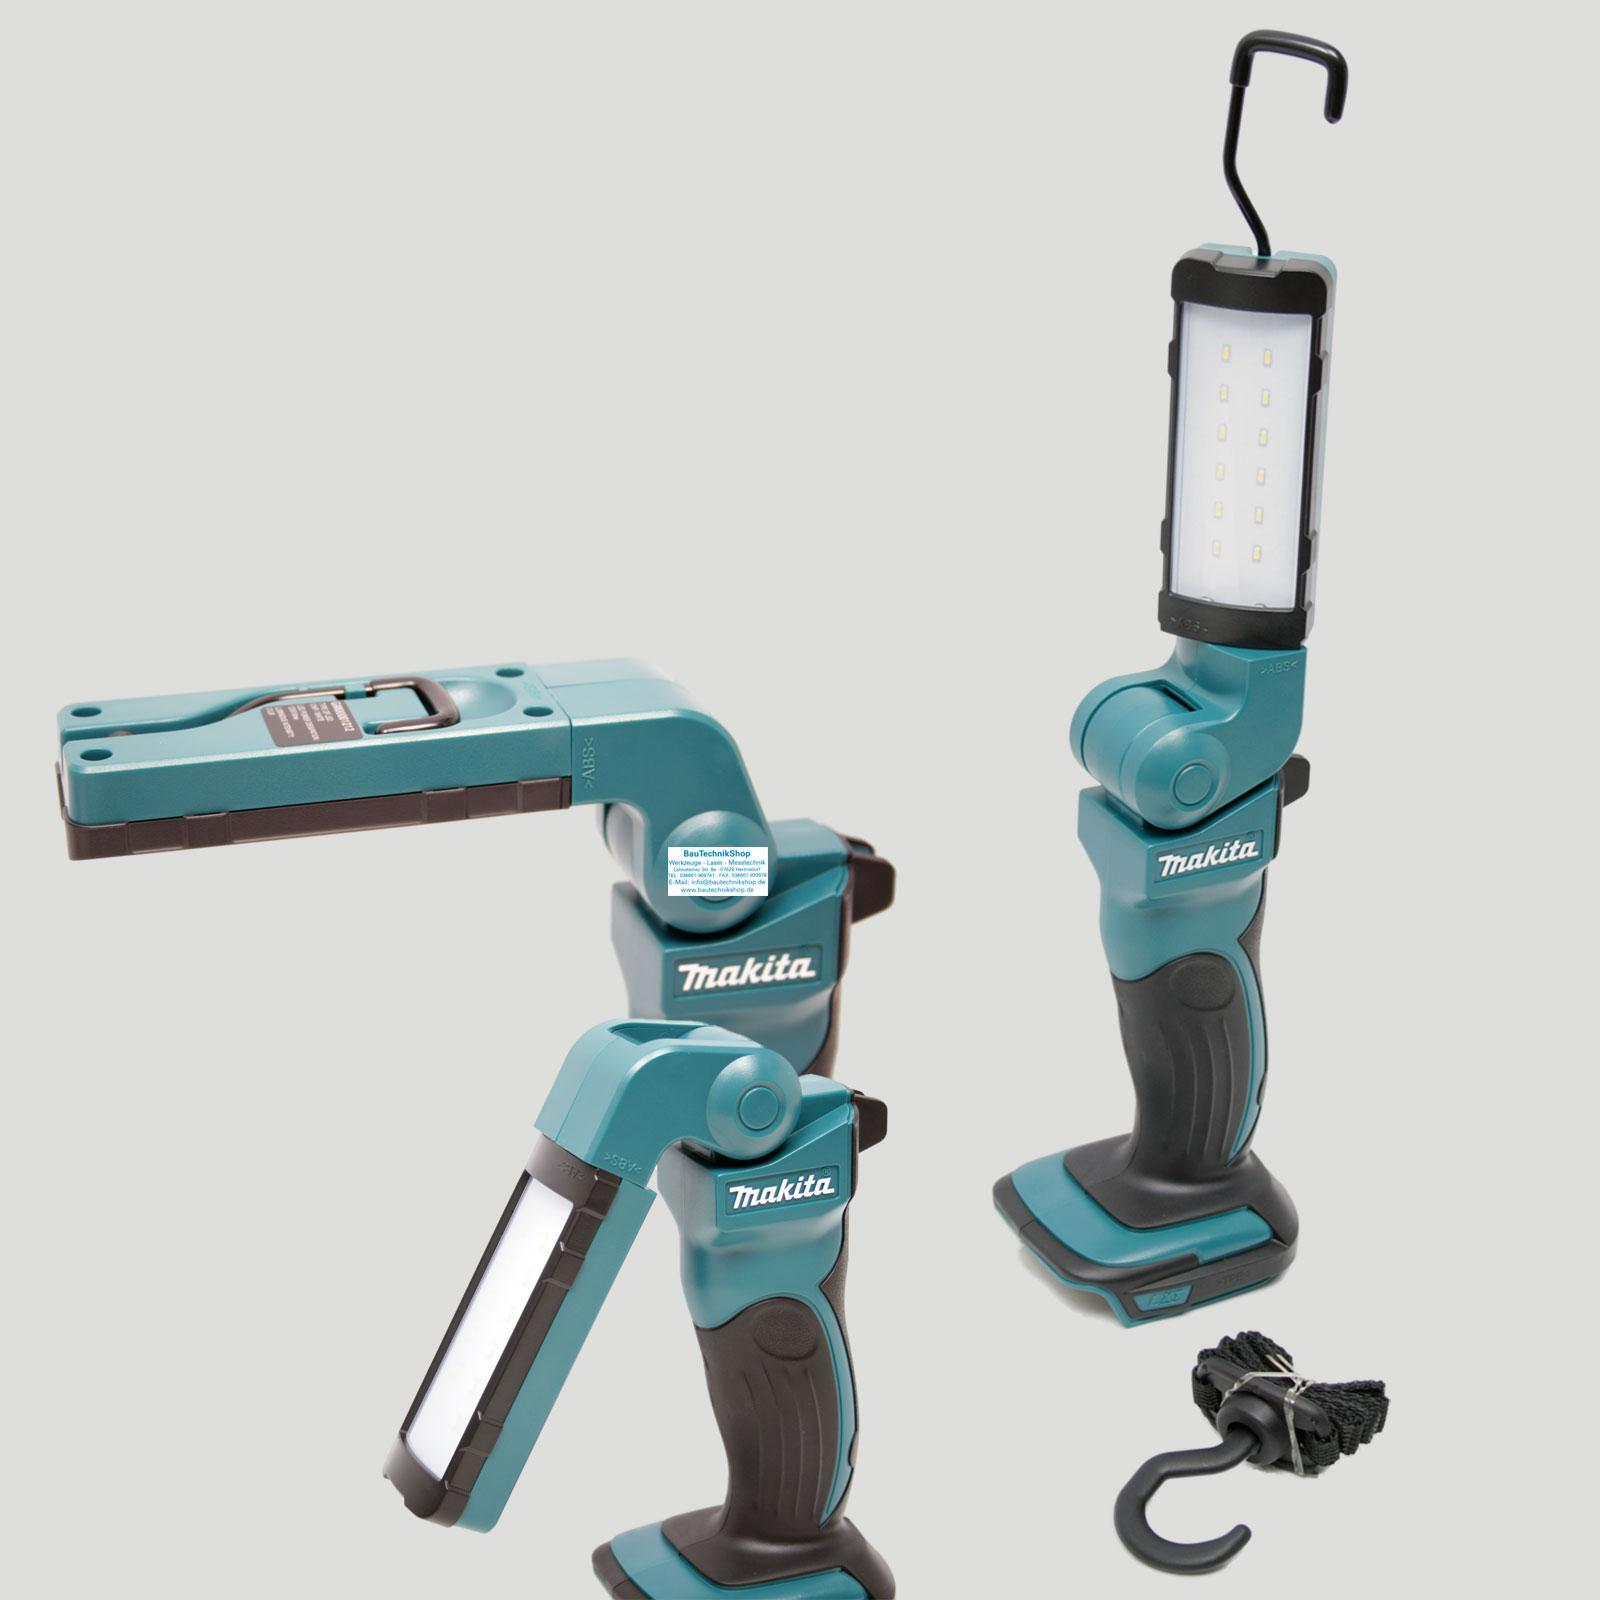 Makita Gartengeräte Set